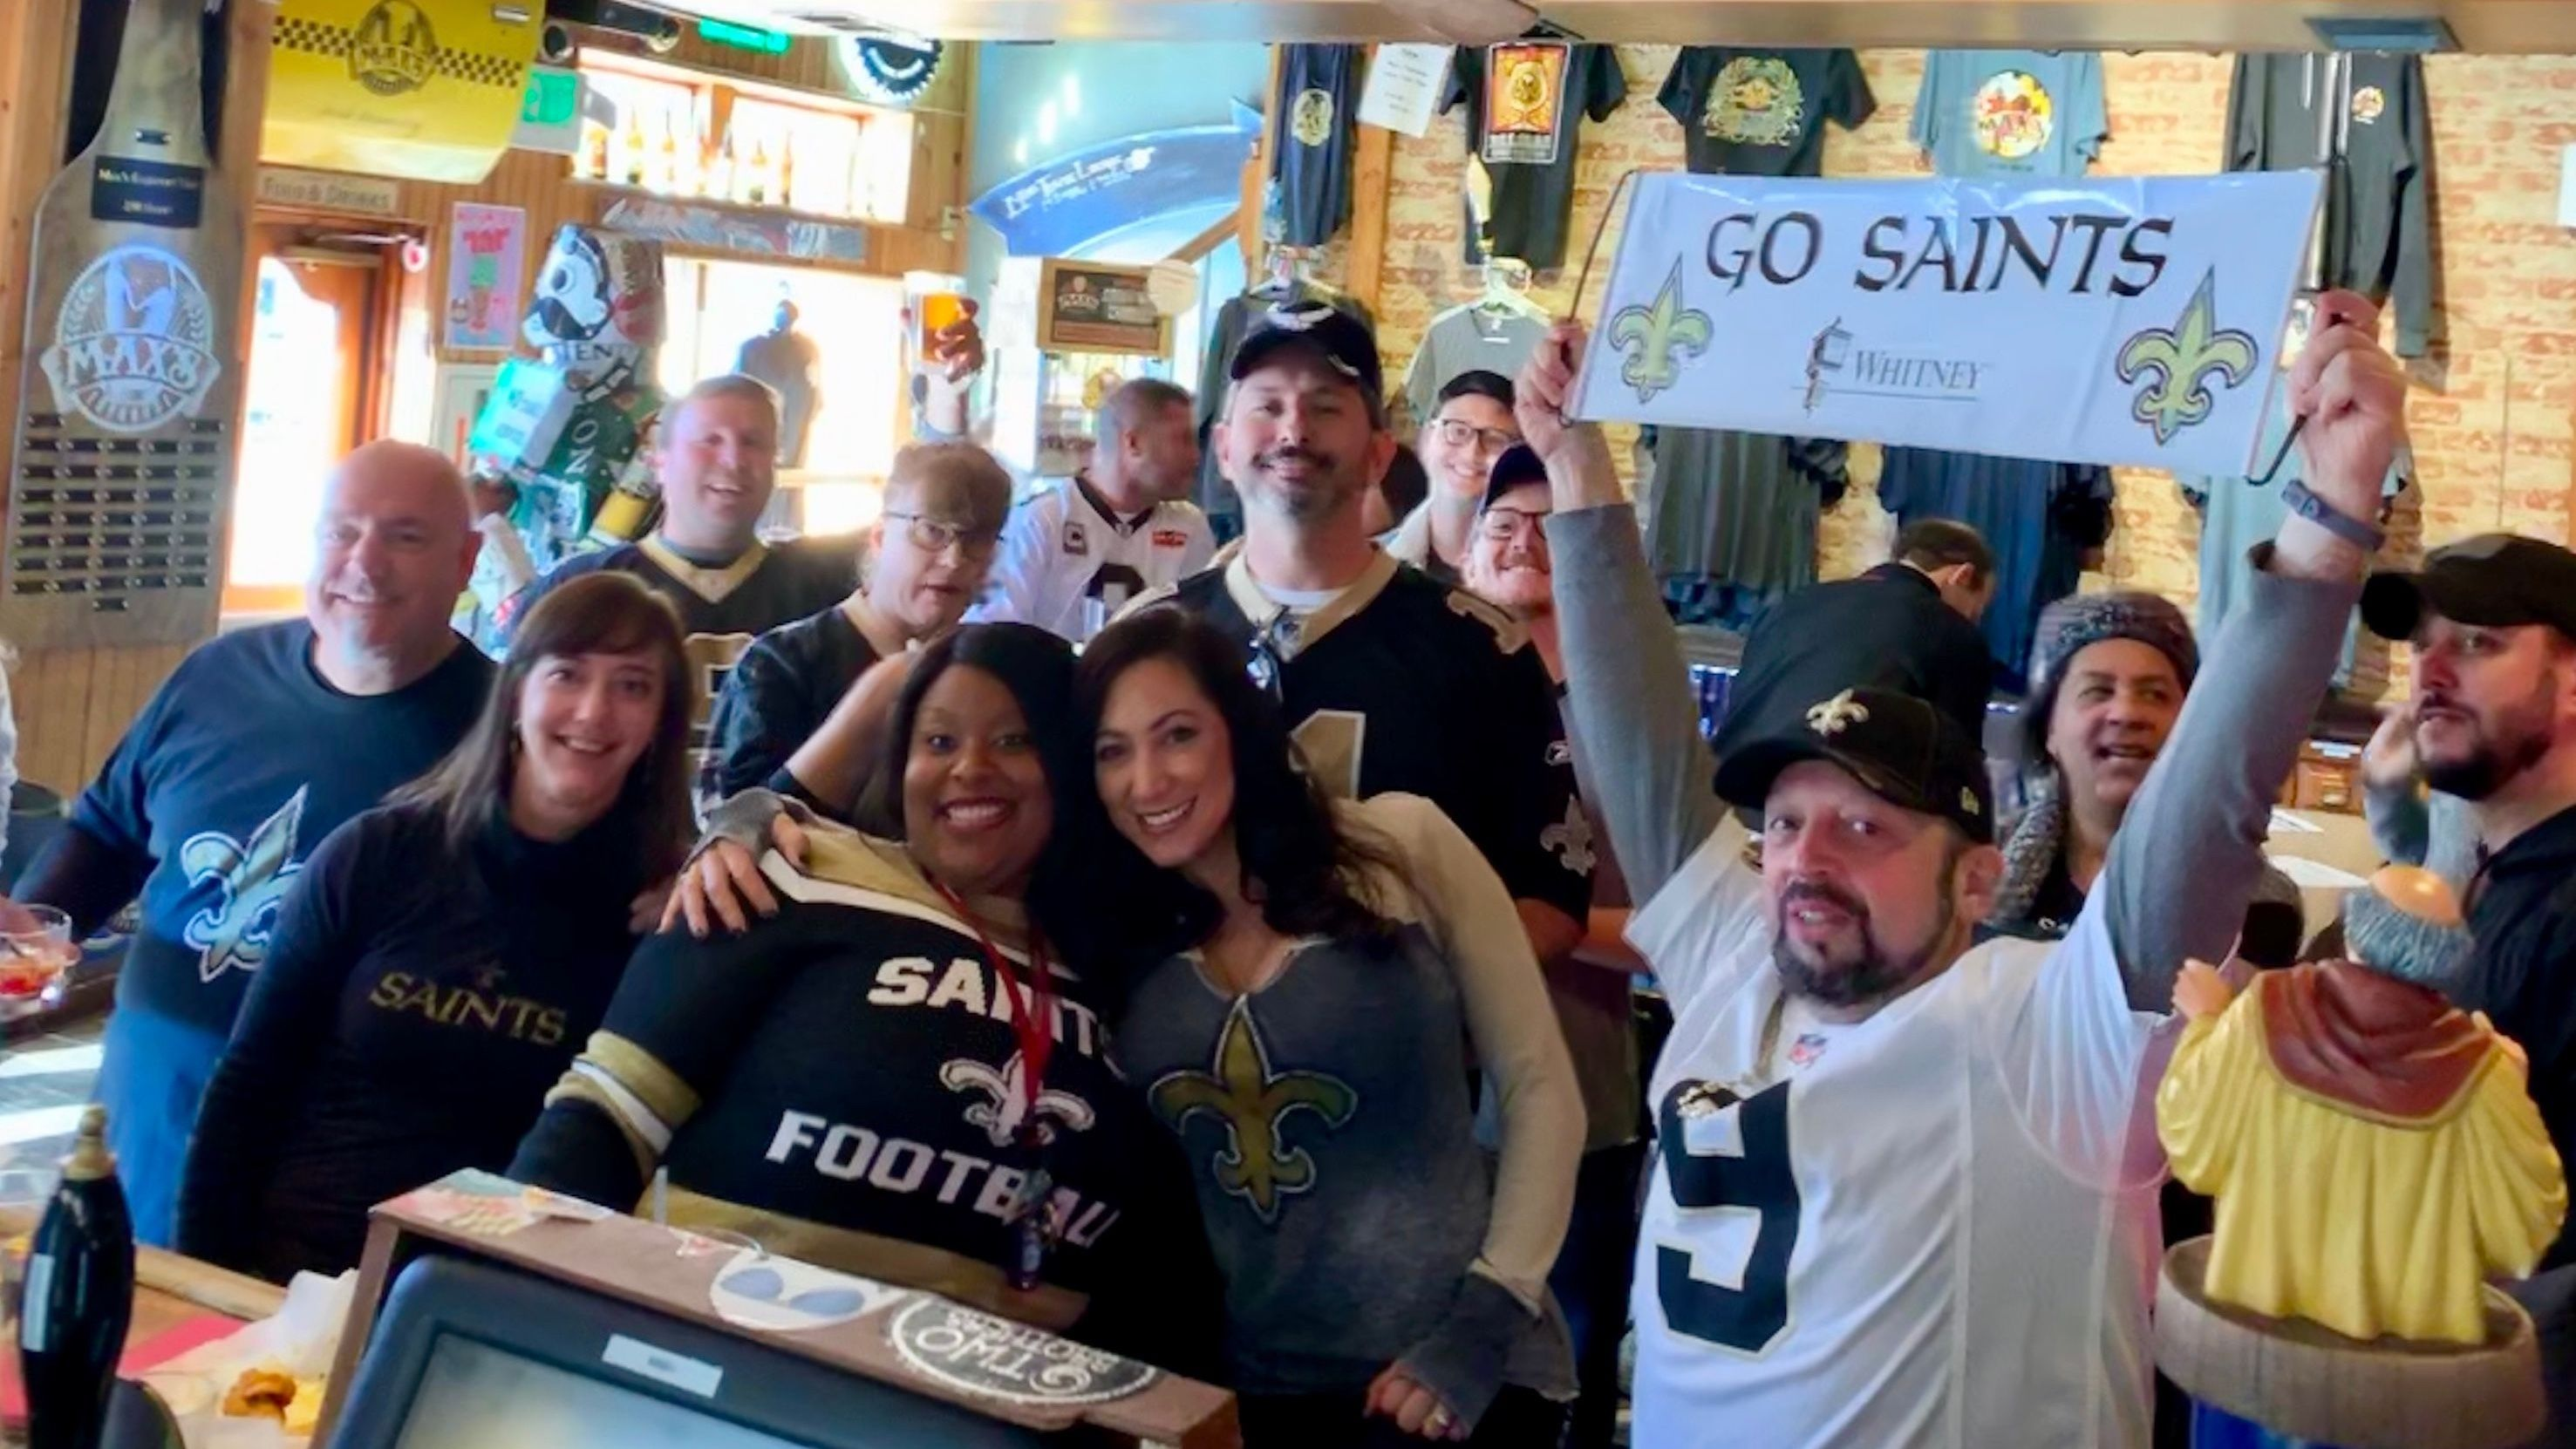 New Orleans Saints Fans in Baltimore .......(WHO DAT!)......